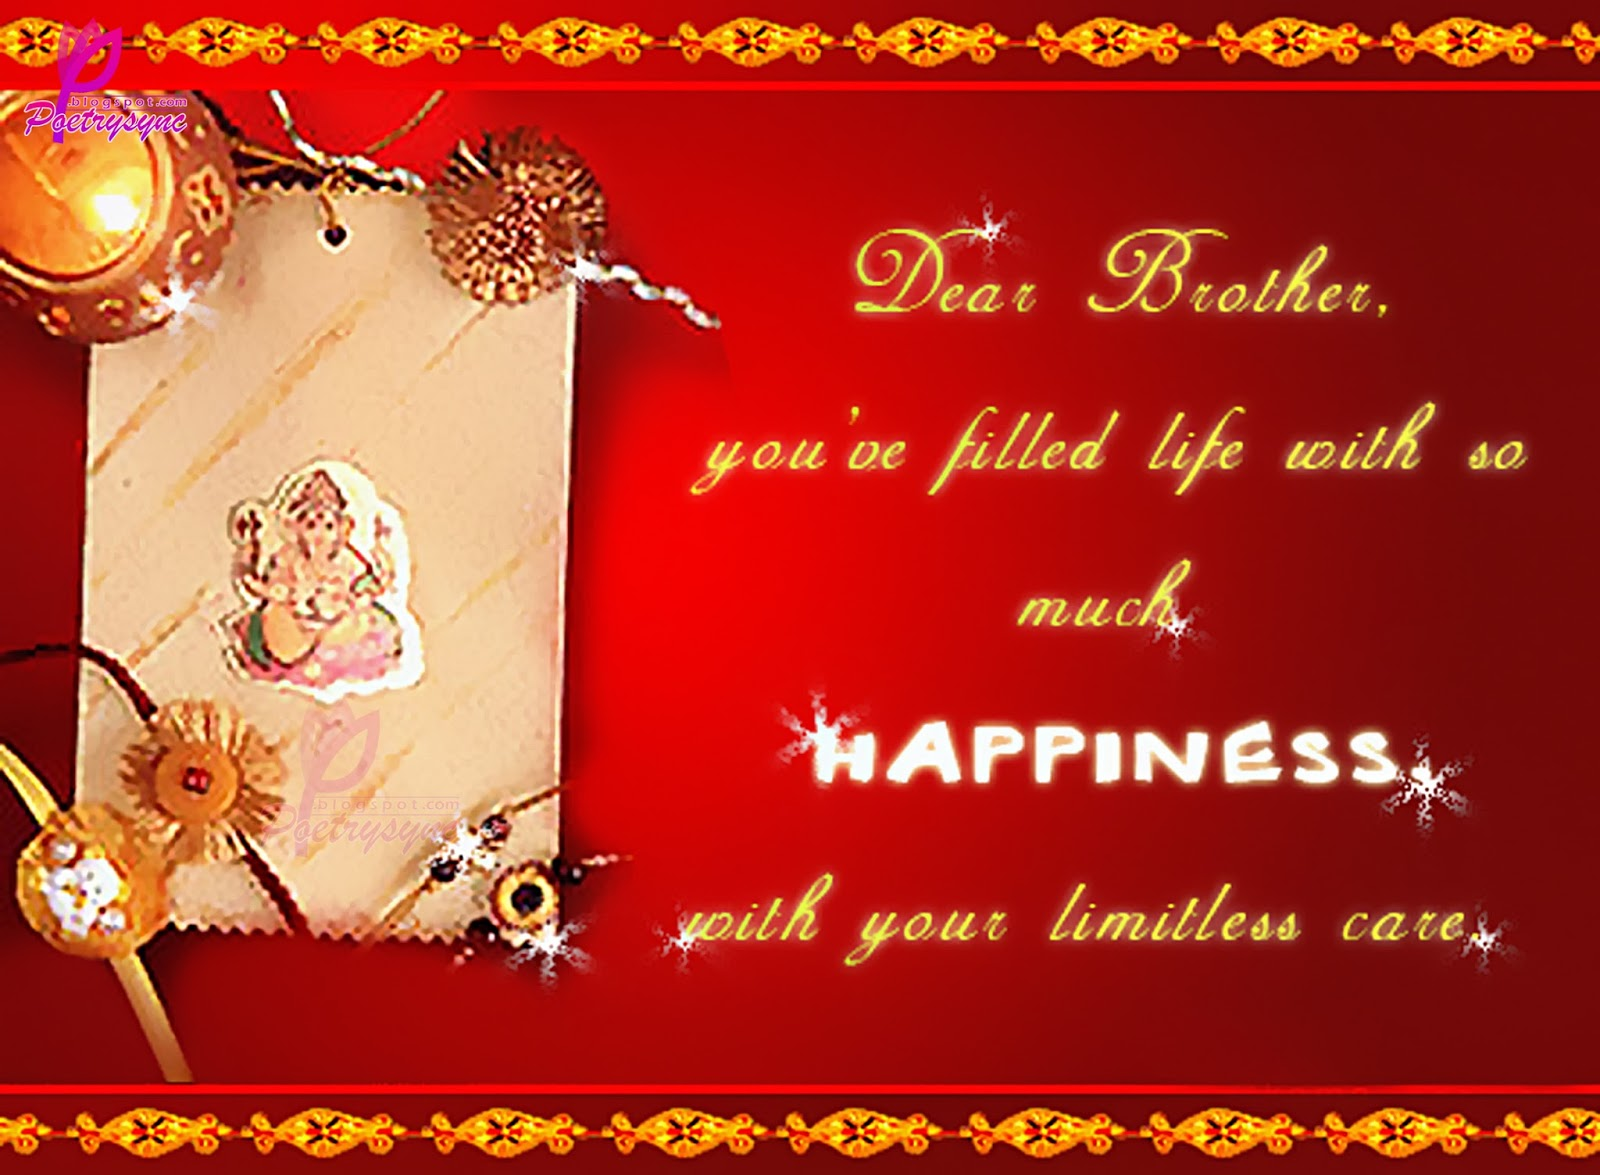 Meaning of raksha bandhan raksha bandhan wishes greeting cards check the latest images of raksha bandhan wishes greeting cards m4hsunfo Images